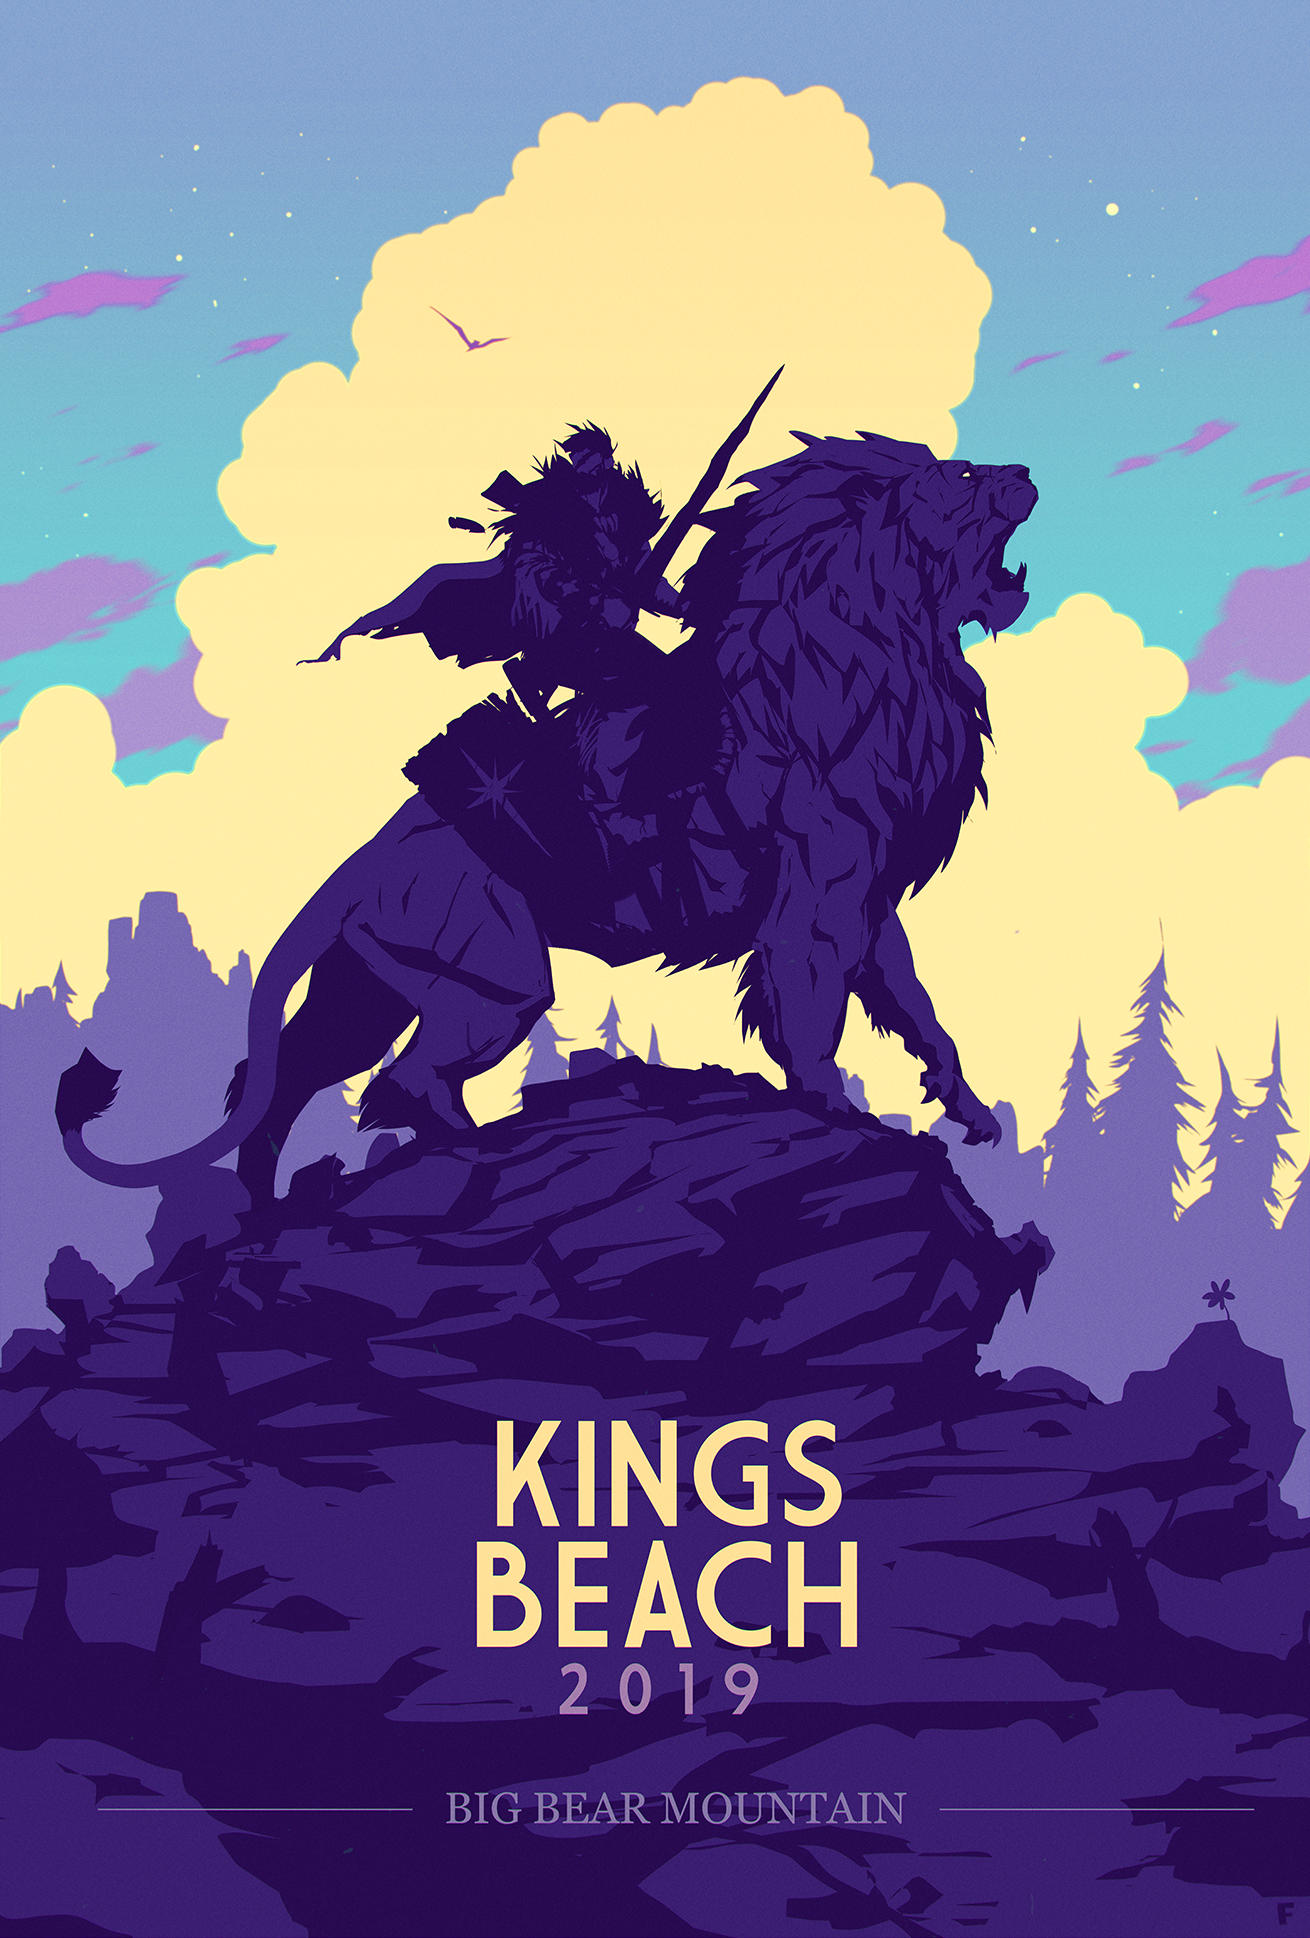 Illustration of the Kings Beach 2019 poster featuring a man riding a lion